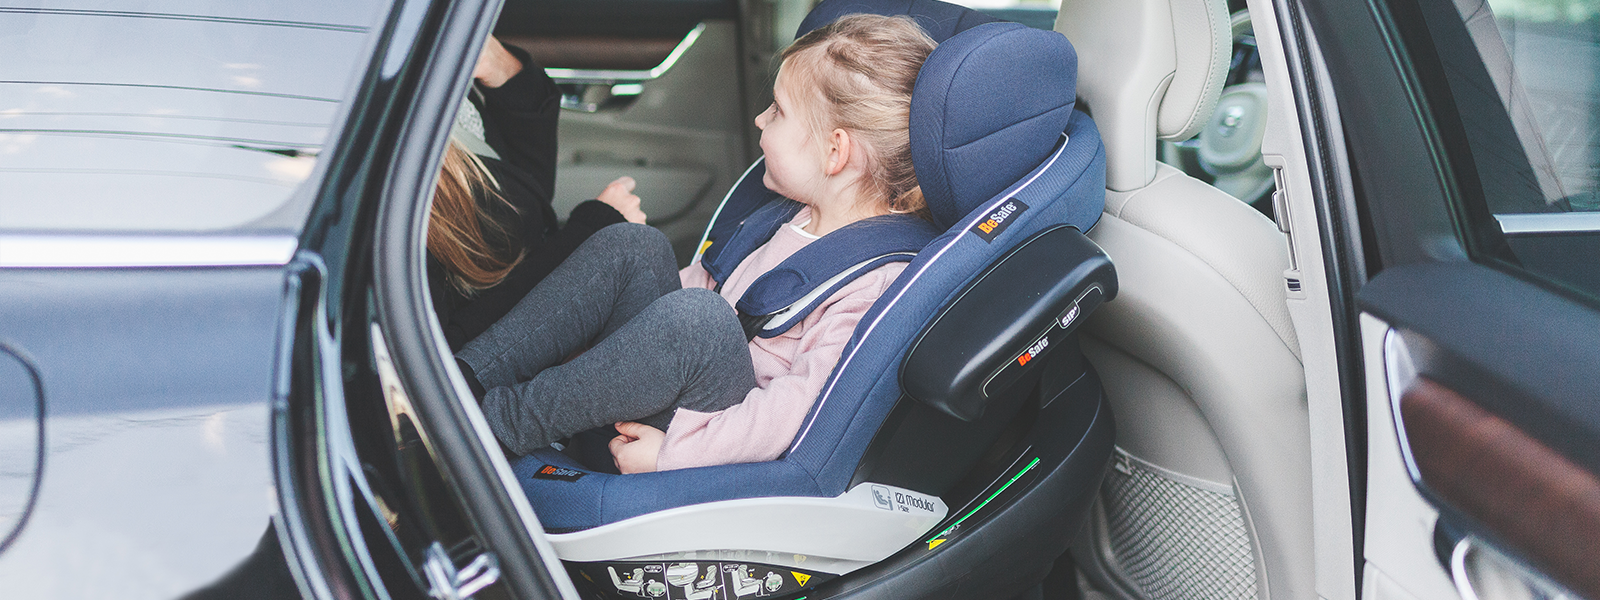 When is the best time to buy baby car seat